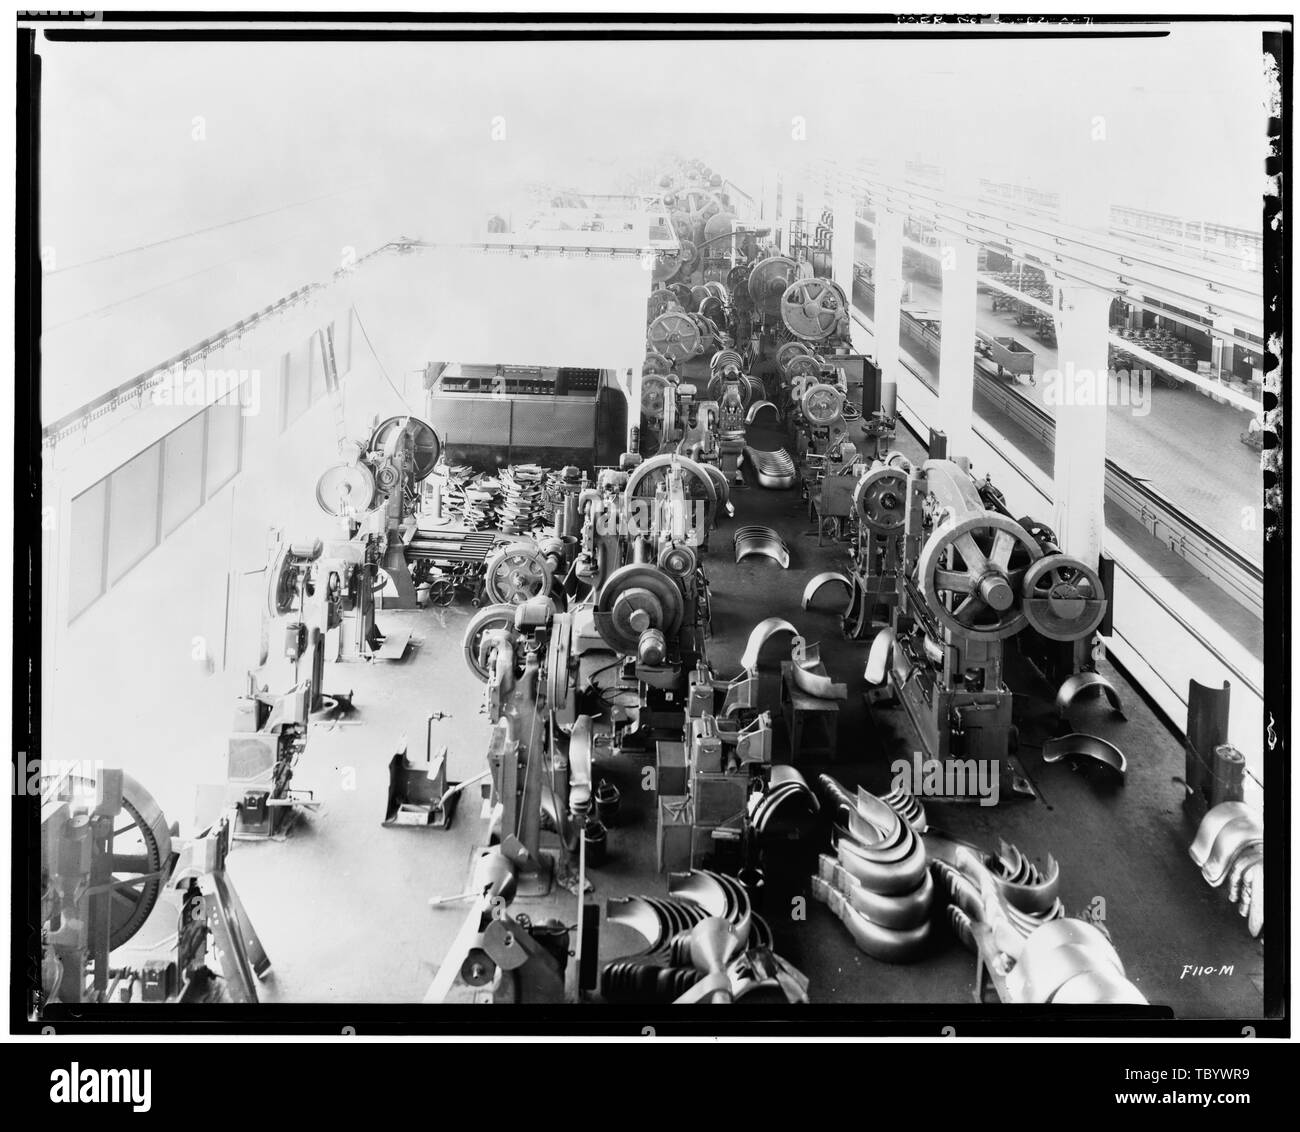 Neg. Nr. F 11 OM, Apr 24, 1931 INTERIORPRESSED STAHLBAU, Nordosten nach Süden, mit GEPRESSTEM STAHL MASCHINEN Ford Motor Company Long Beach Montagewerk, Assembly Building, 700 Henry Ford Avenue, Long Beach, Los Angeles County, CA Stockbild